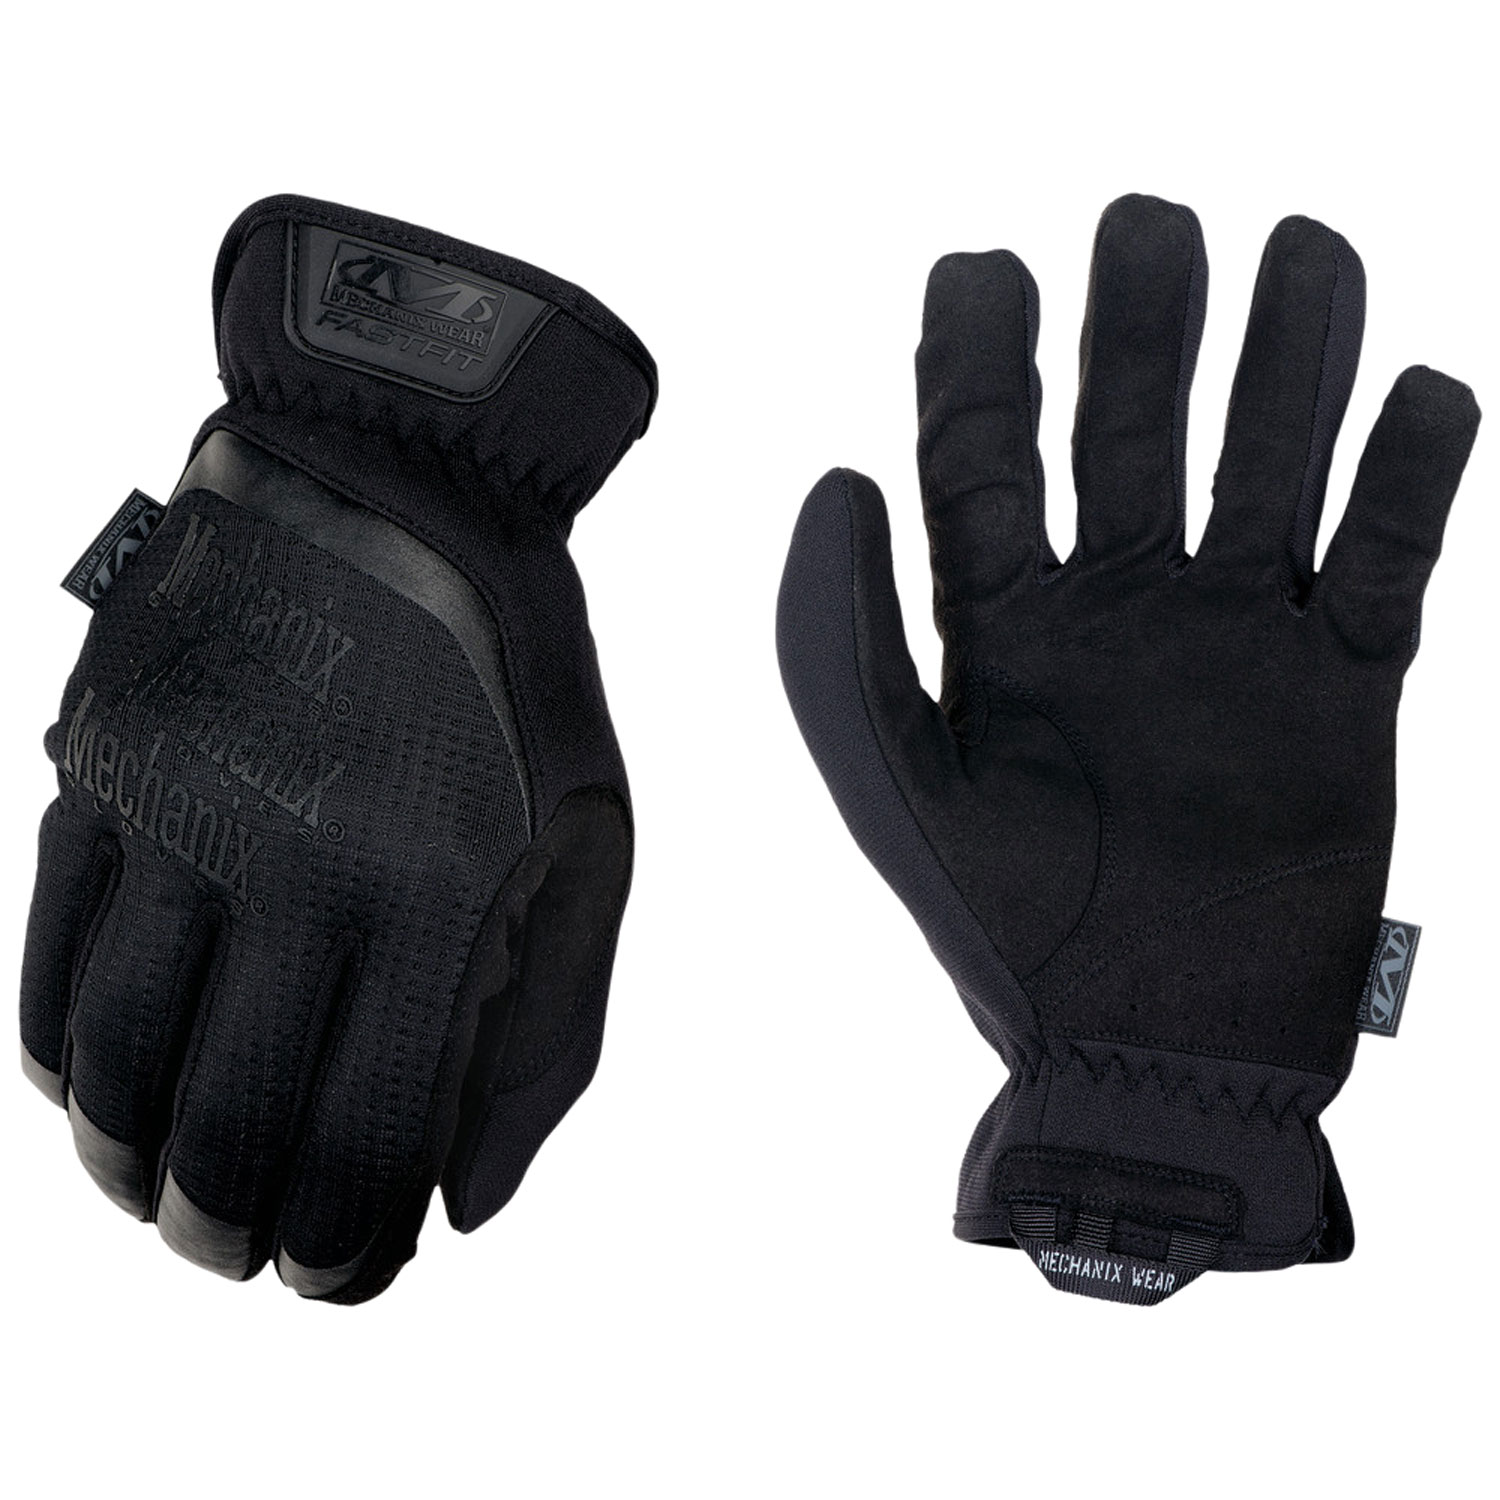 MECHANIX WEAR FFTAB-55-011 FastFit Covert XL Black Synthetic Leather Touchscreen